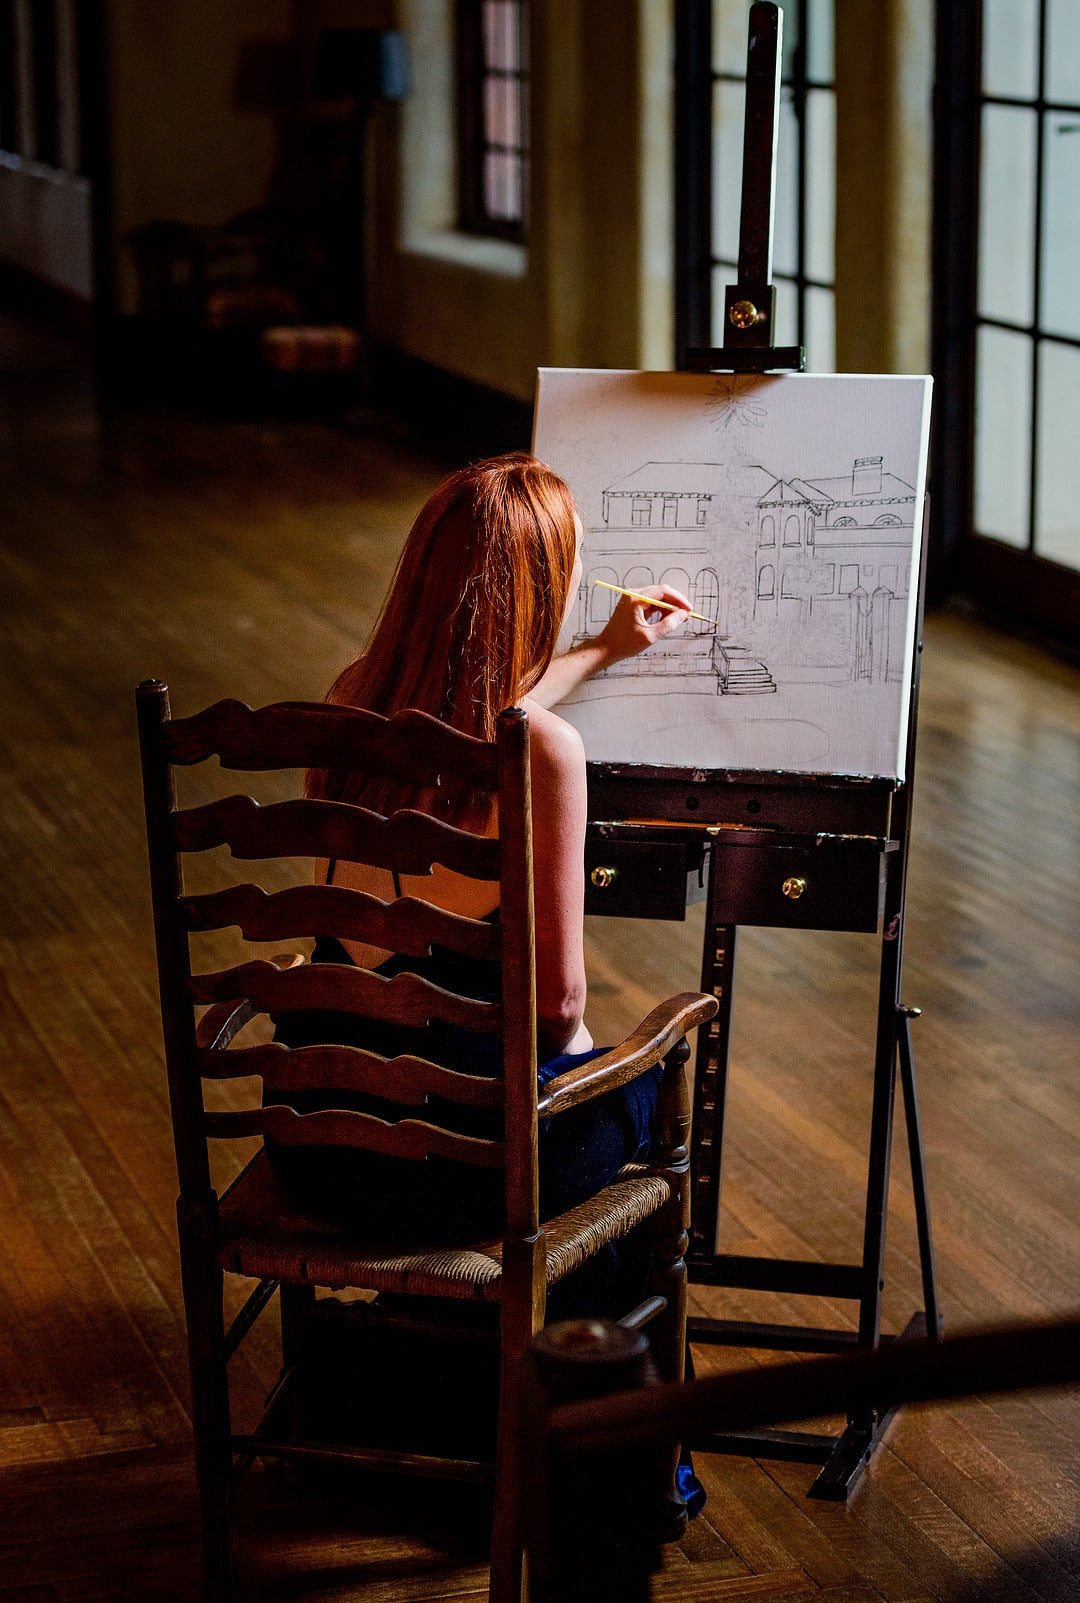 shot from behind live event painter drawing the historic wedding venue on easel sitting down in wooden chair